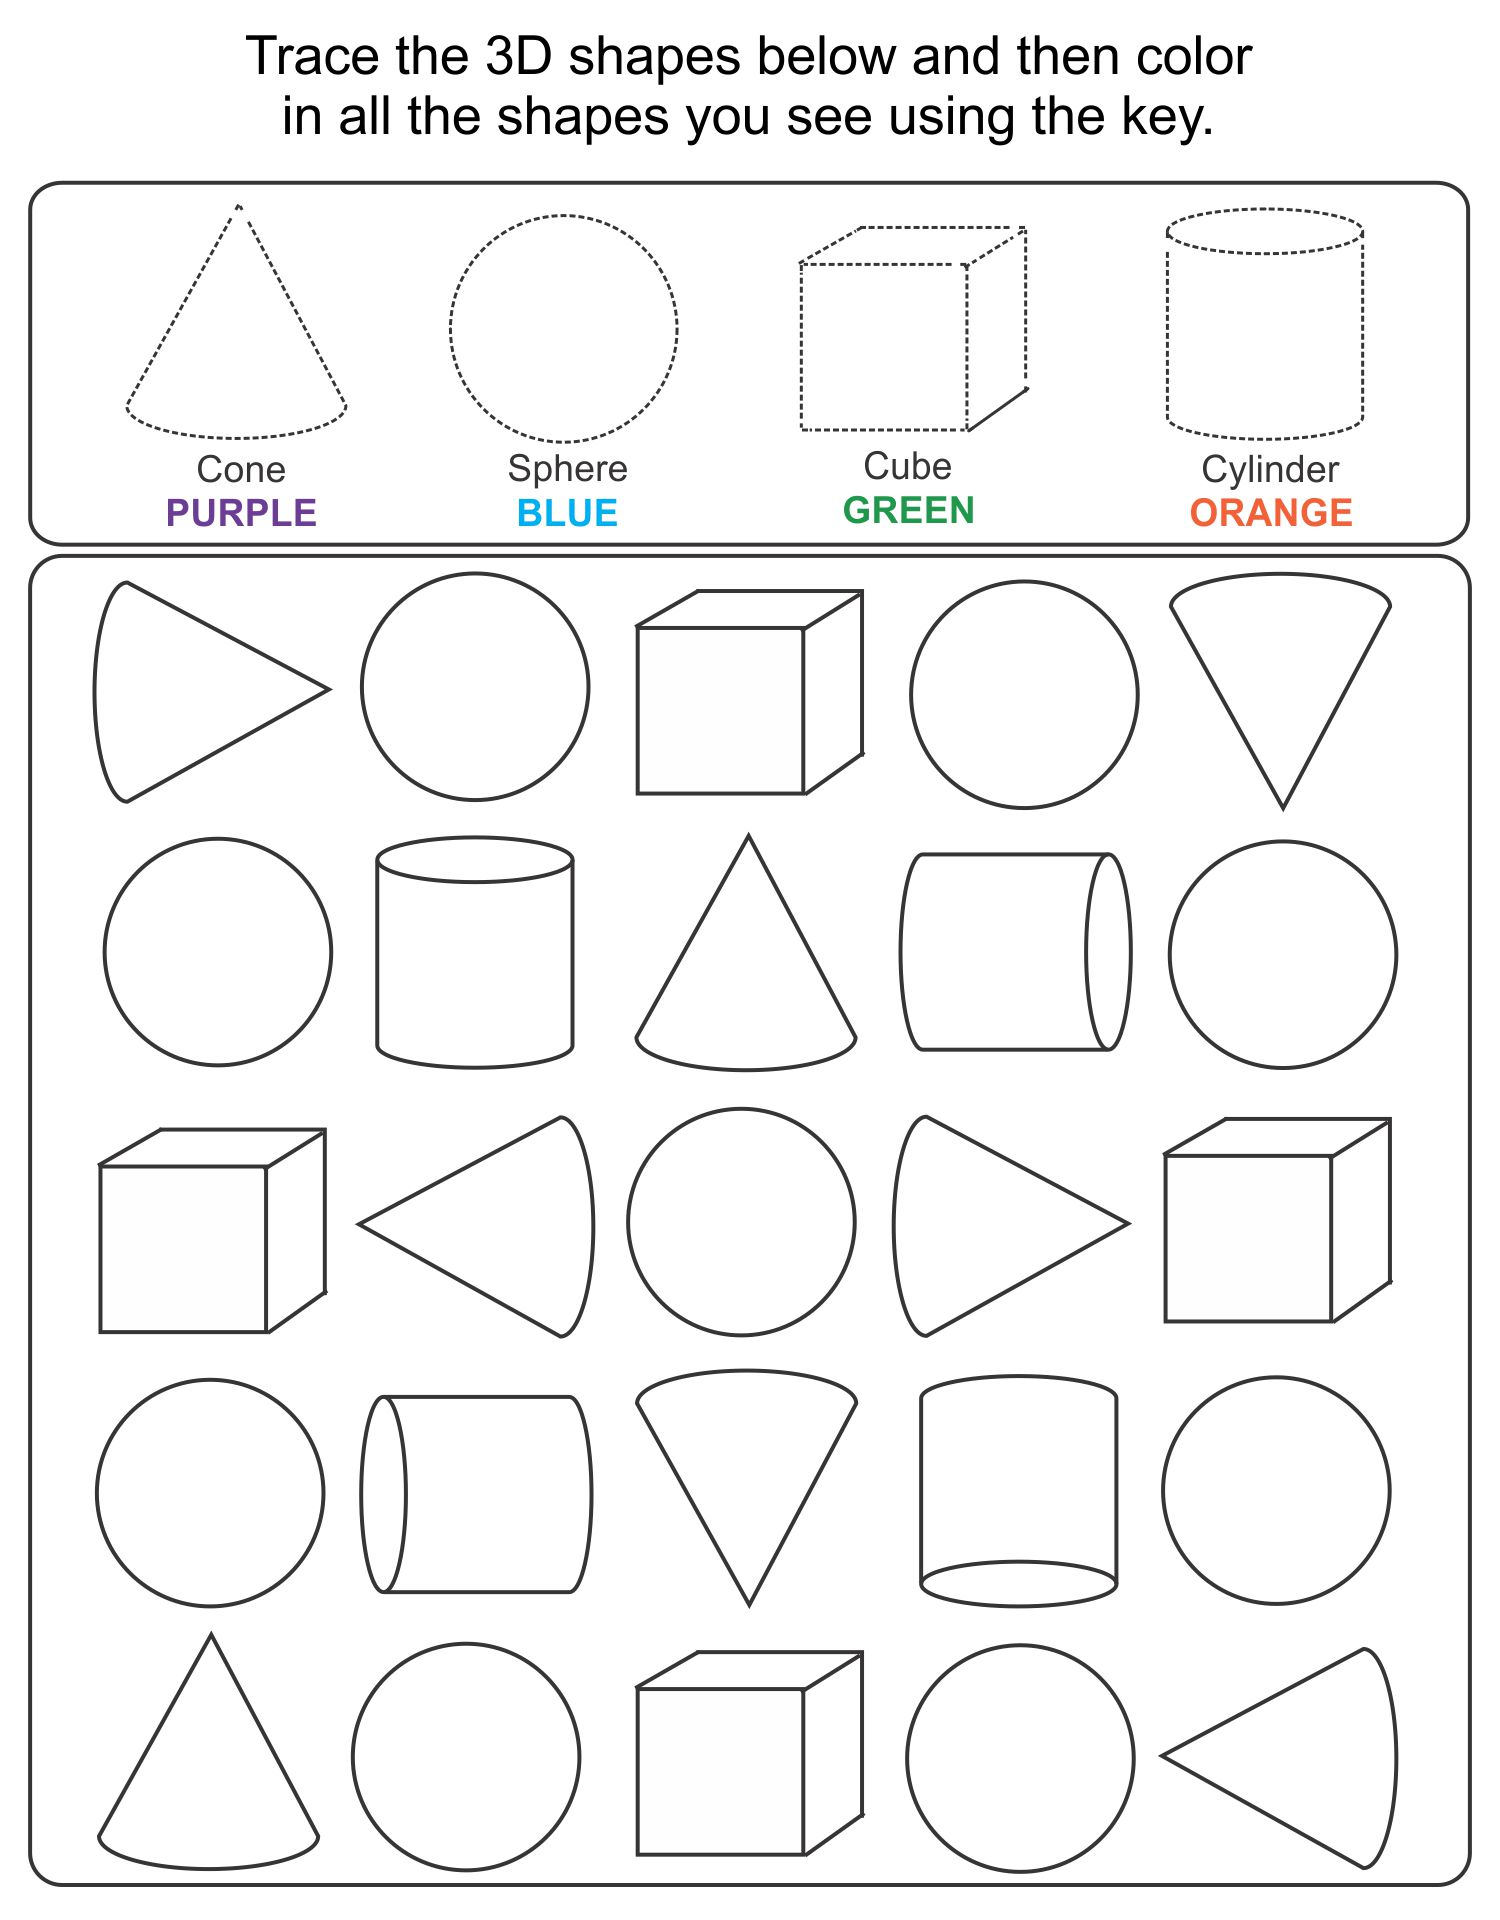 5 Images of Printable 3D Shapes Kindergarten